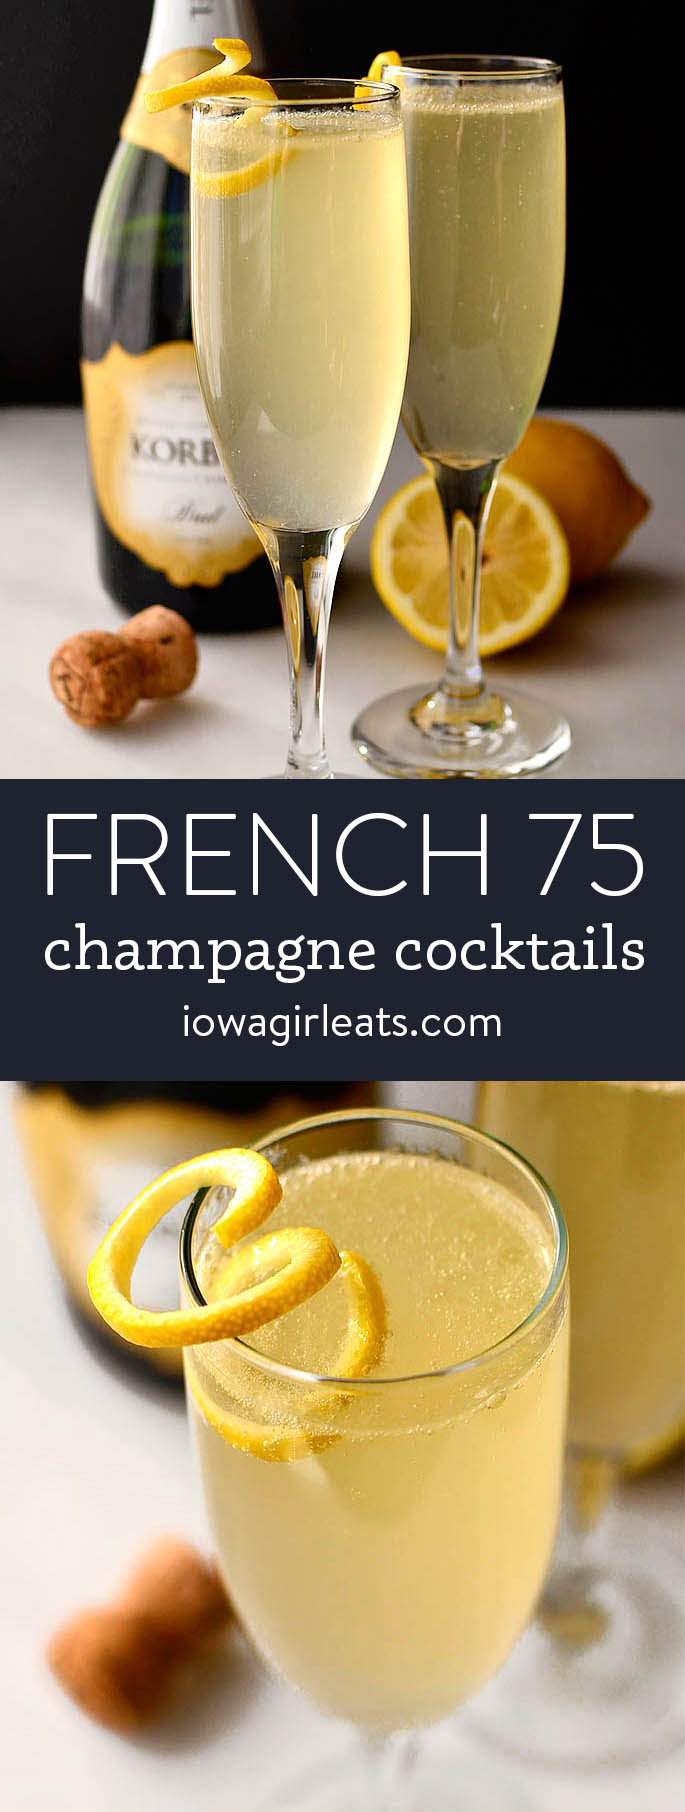 photo collage of French 75 champagne cocktails